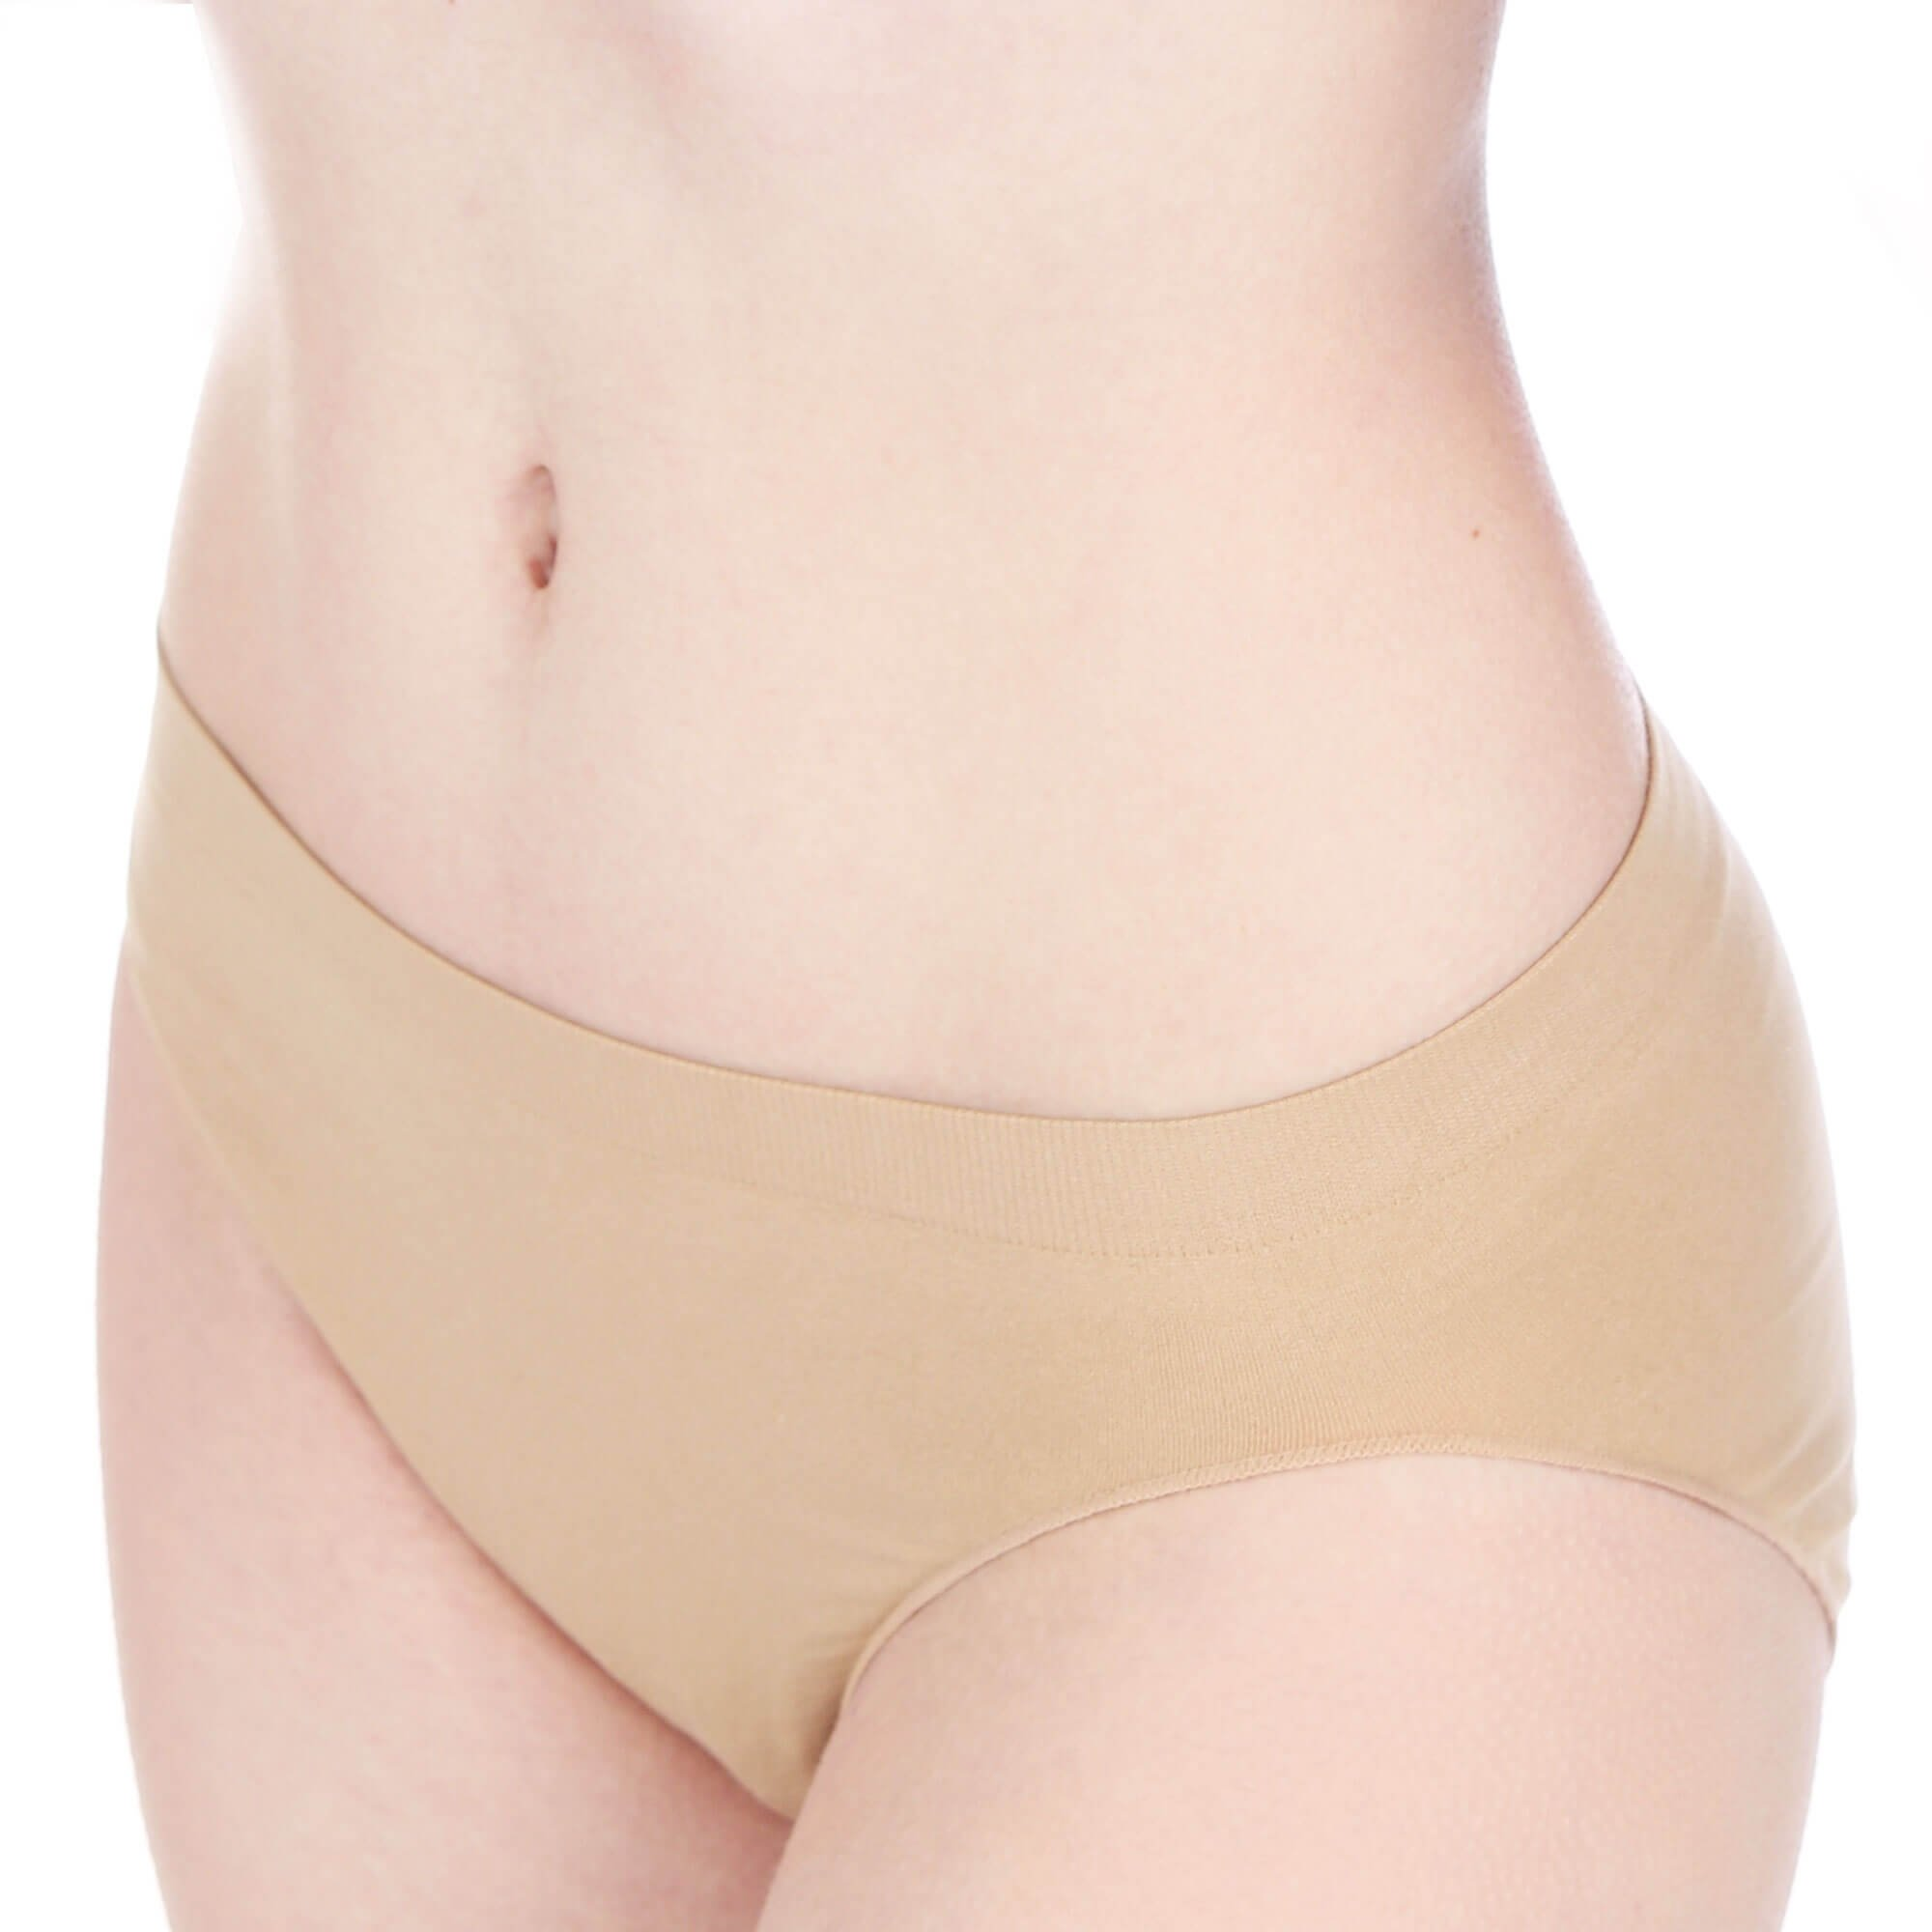 Danzcue Women's Dance Brief